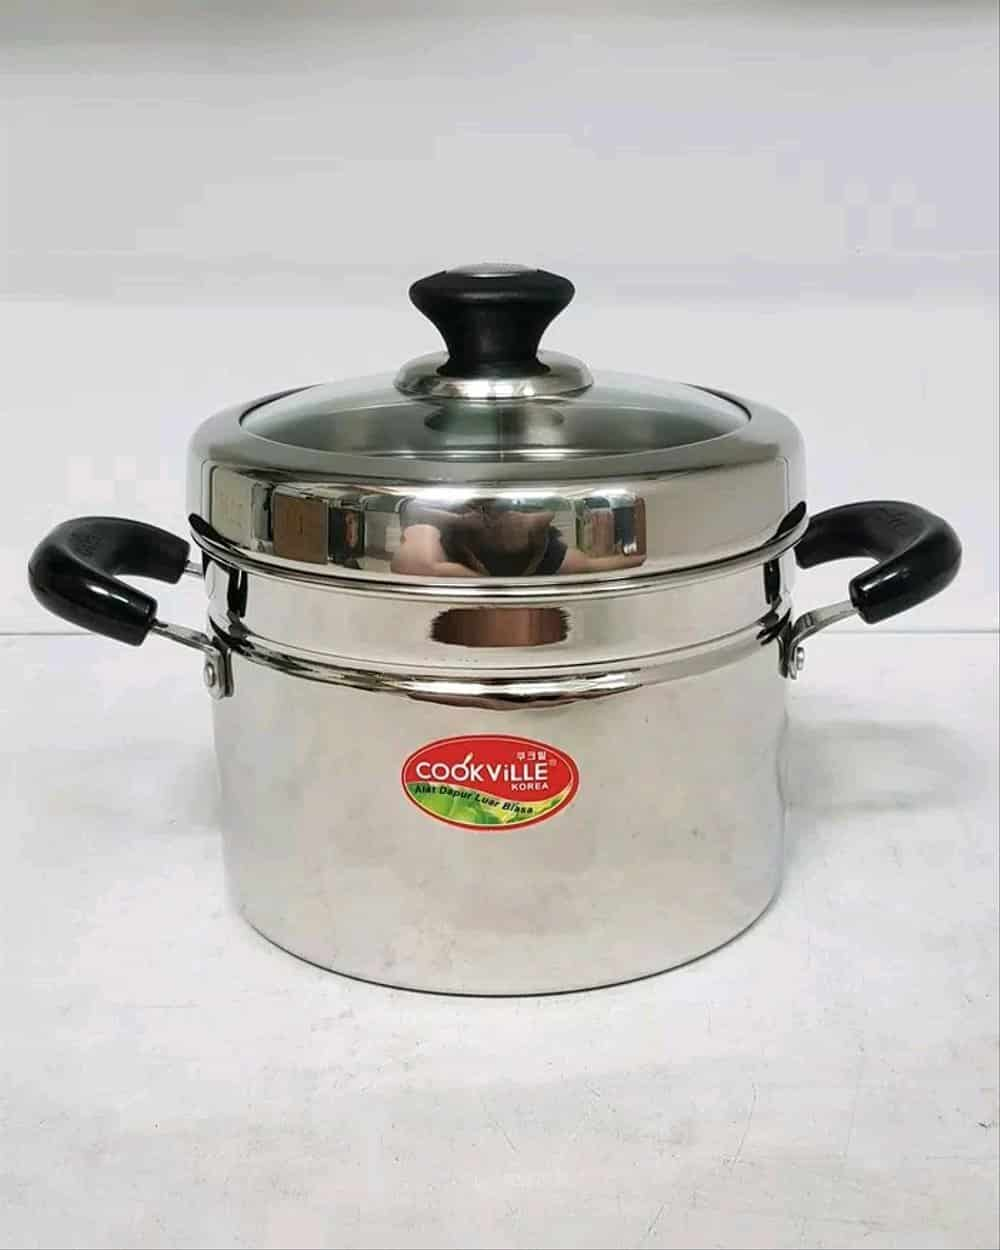 Cookville-Fancy-Steamer-Stainless